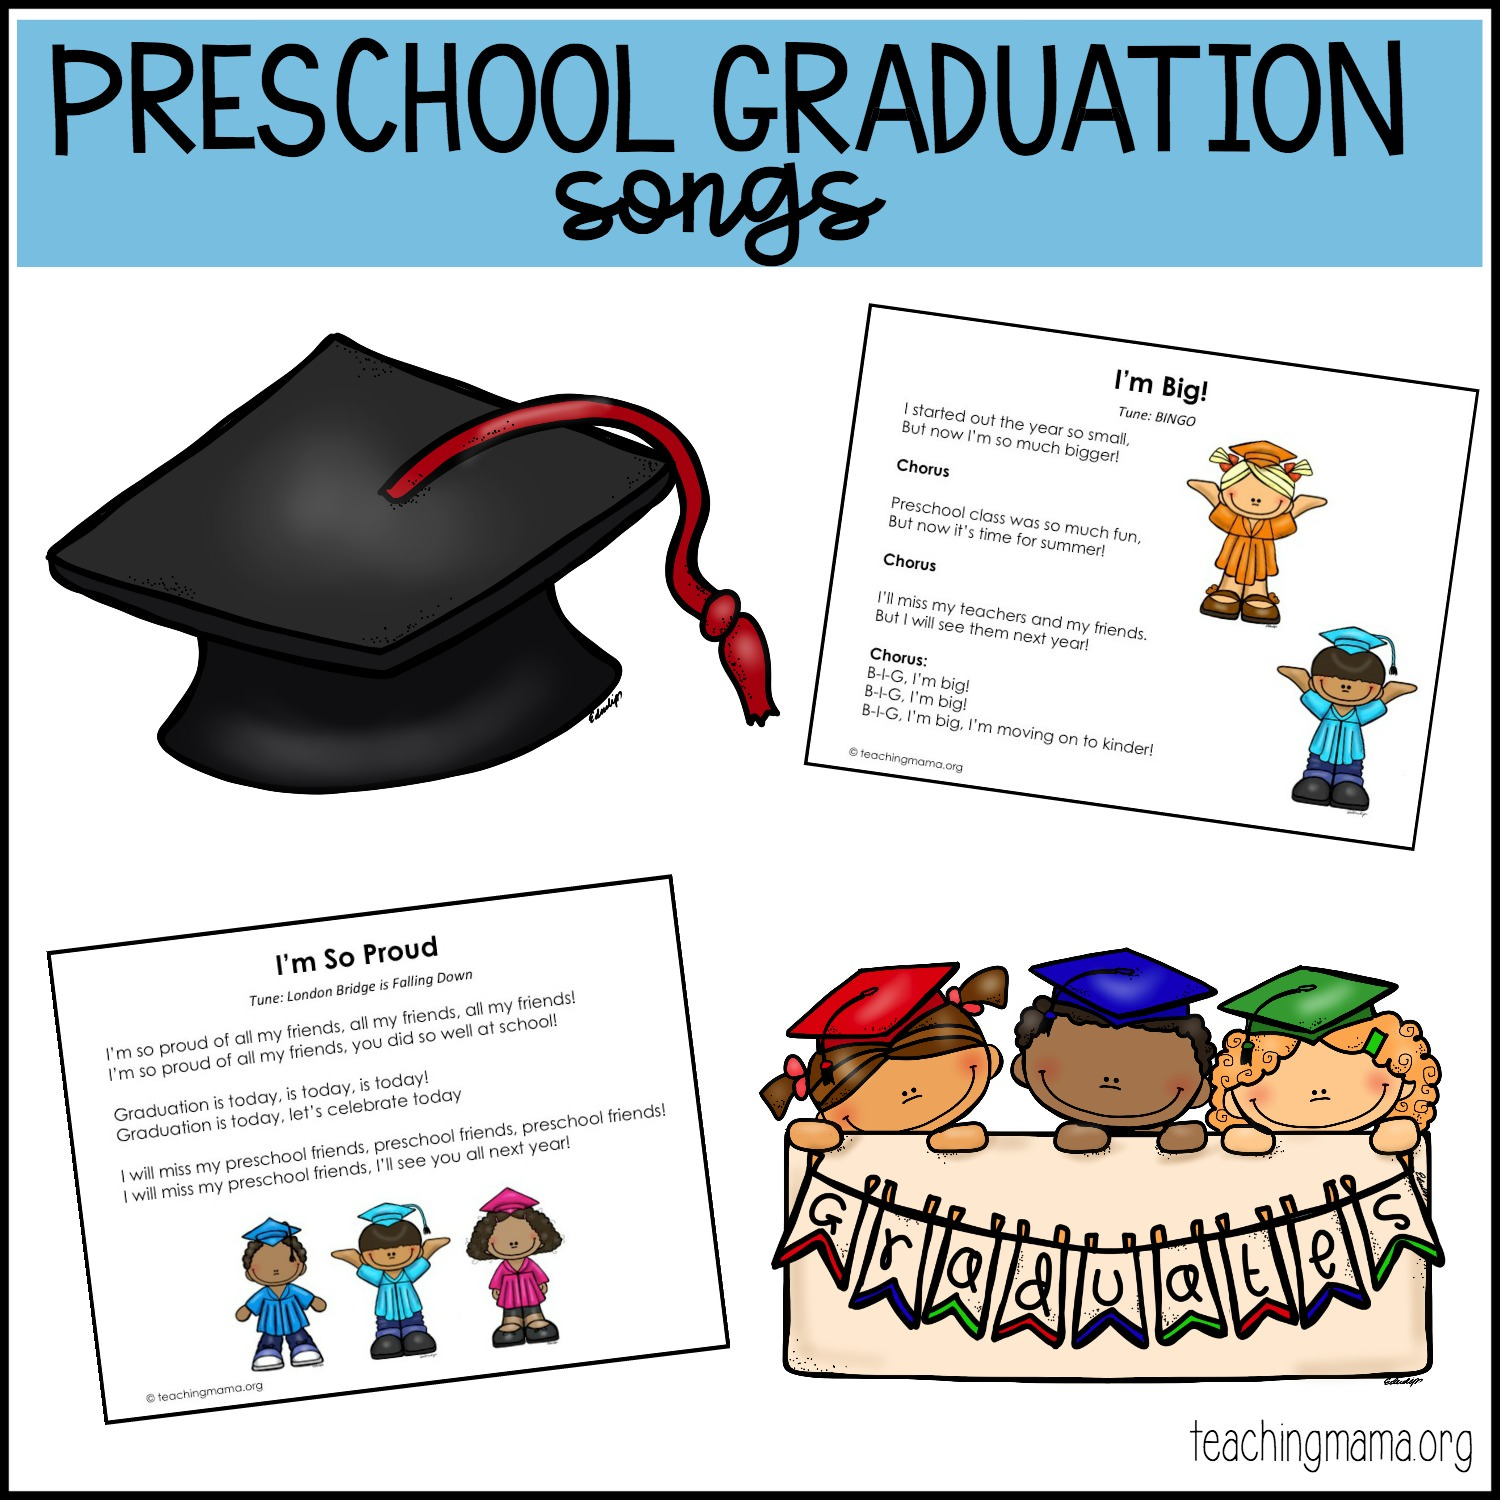 photograph about Make New Friends Song Printable identified as Preschool Commencement New music - No cost Printables Far more Plans